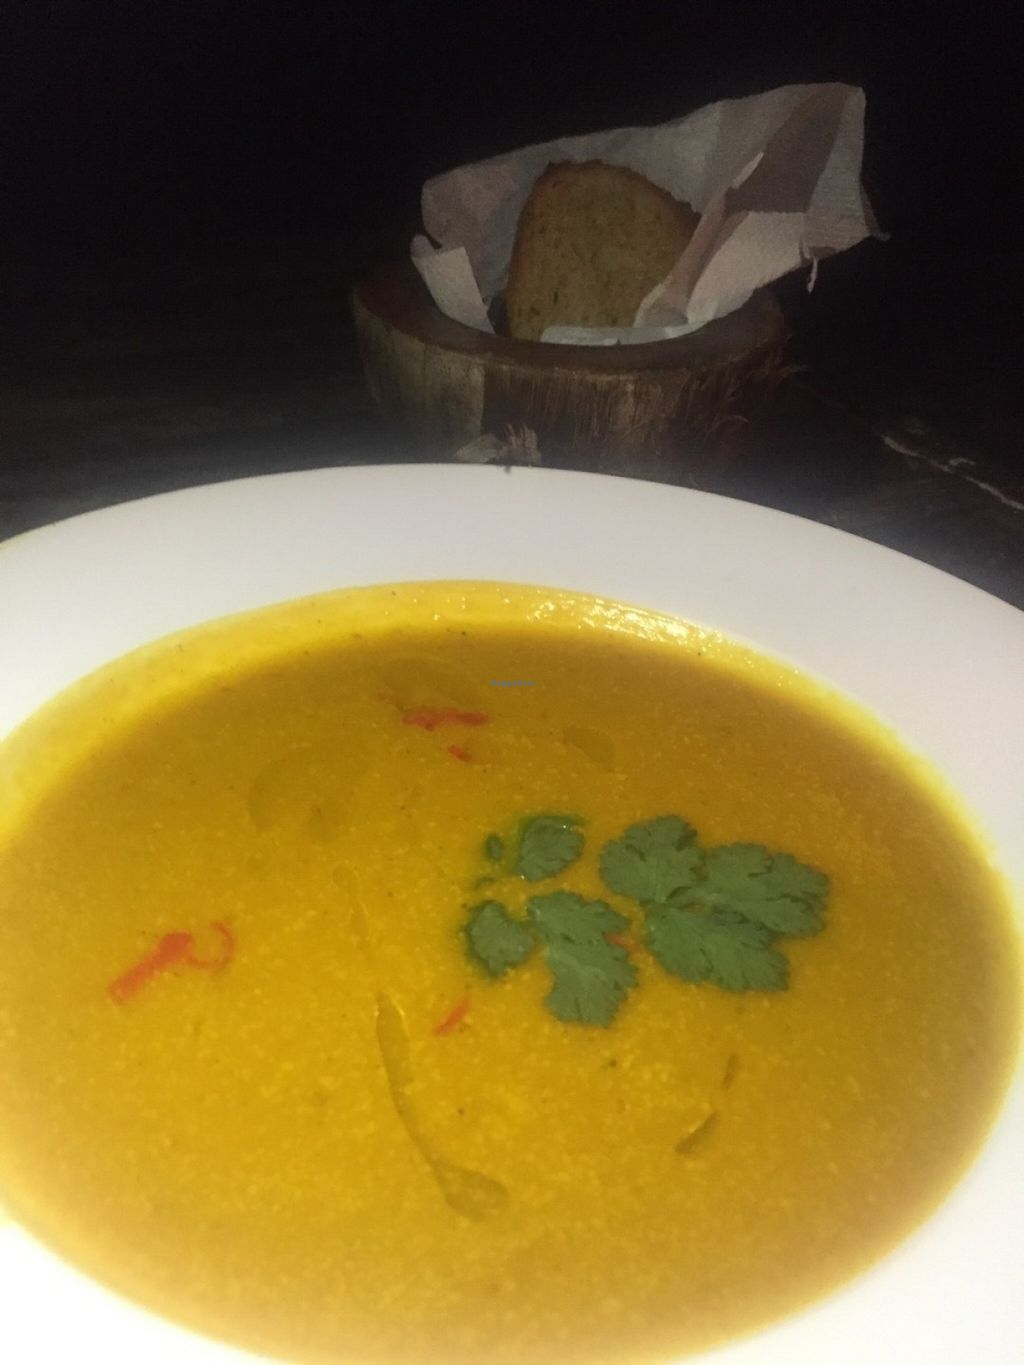 """Photo of Mowie's   by <a href=""""/members/profile/rodgo"""">rodgo</a> <br/>Pumpkin soup  <br/> July 18, 2016  - <a href='/contact/abuse/image/76717/160577'>Report</a>"""